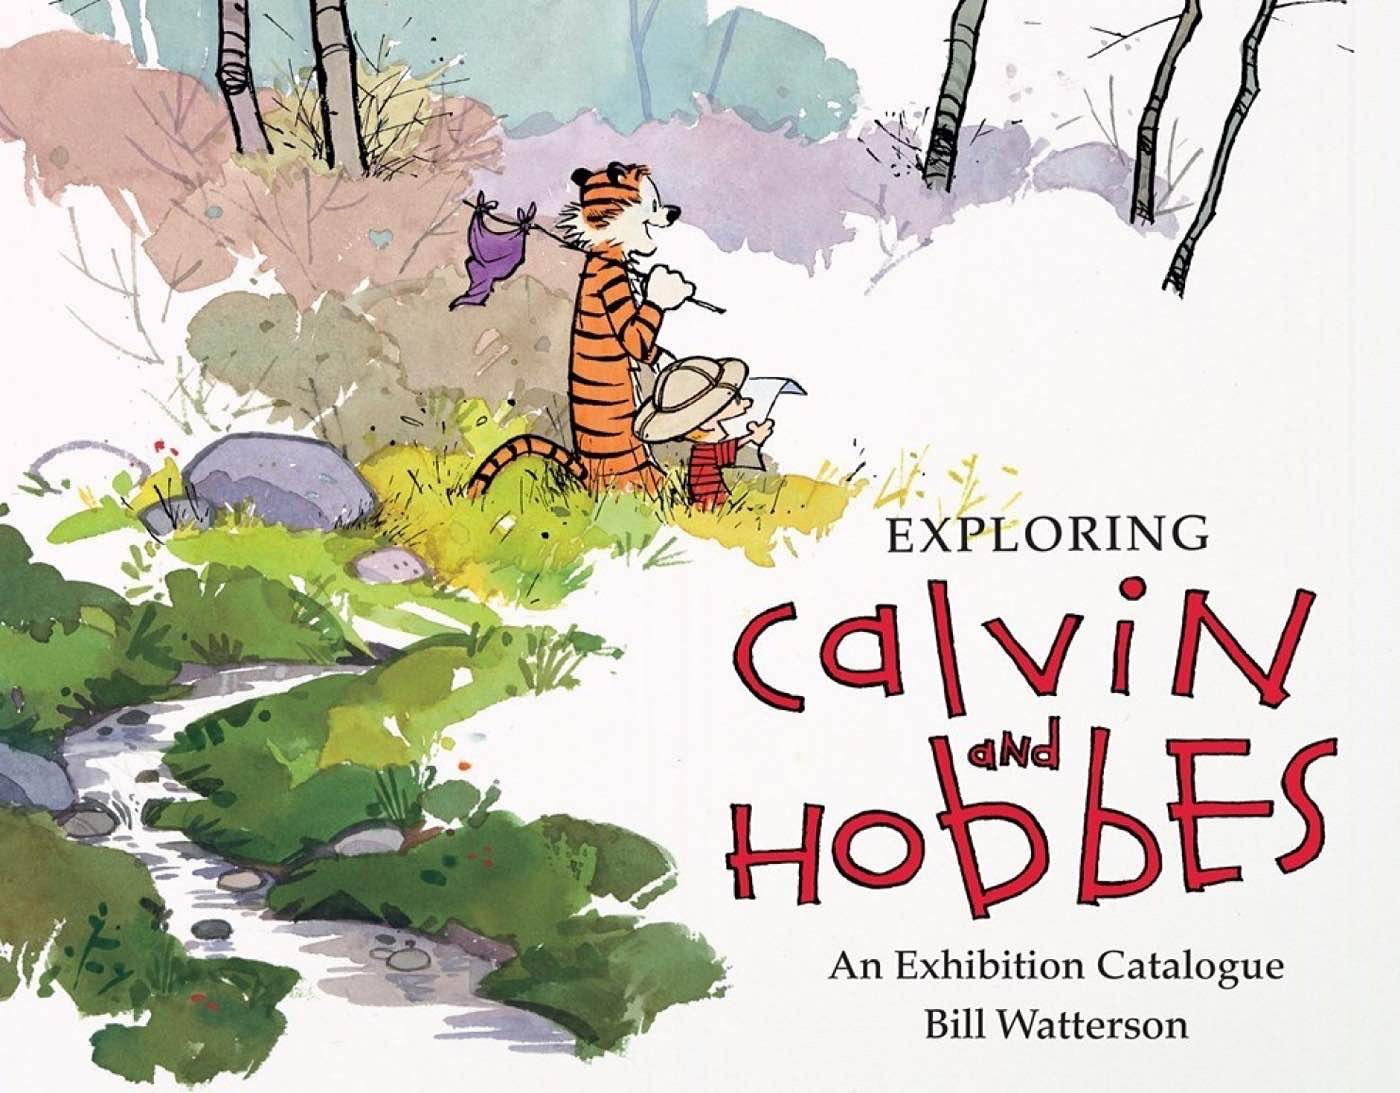 Exploring Calvin and Hobbes: An Exhibition Catalogue by Jenny Robb.